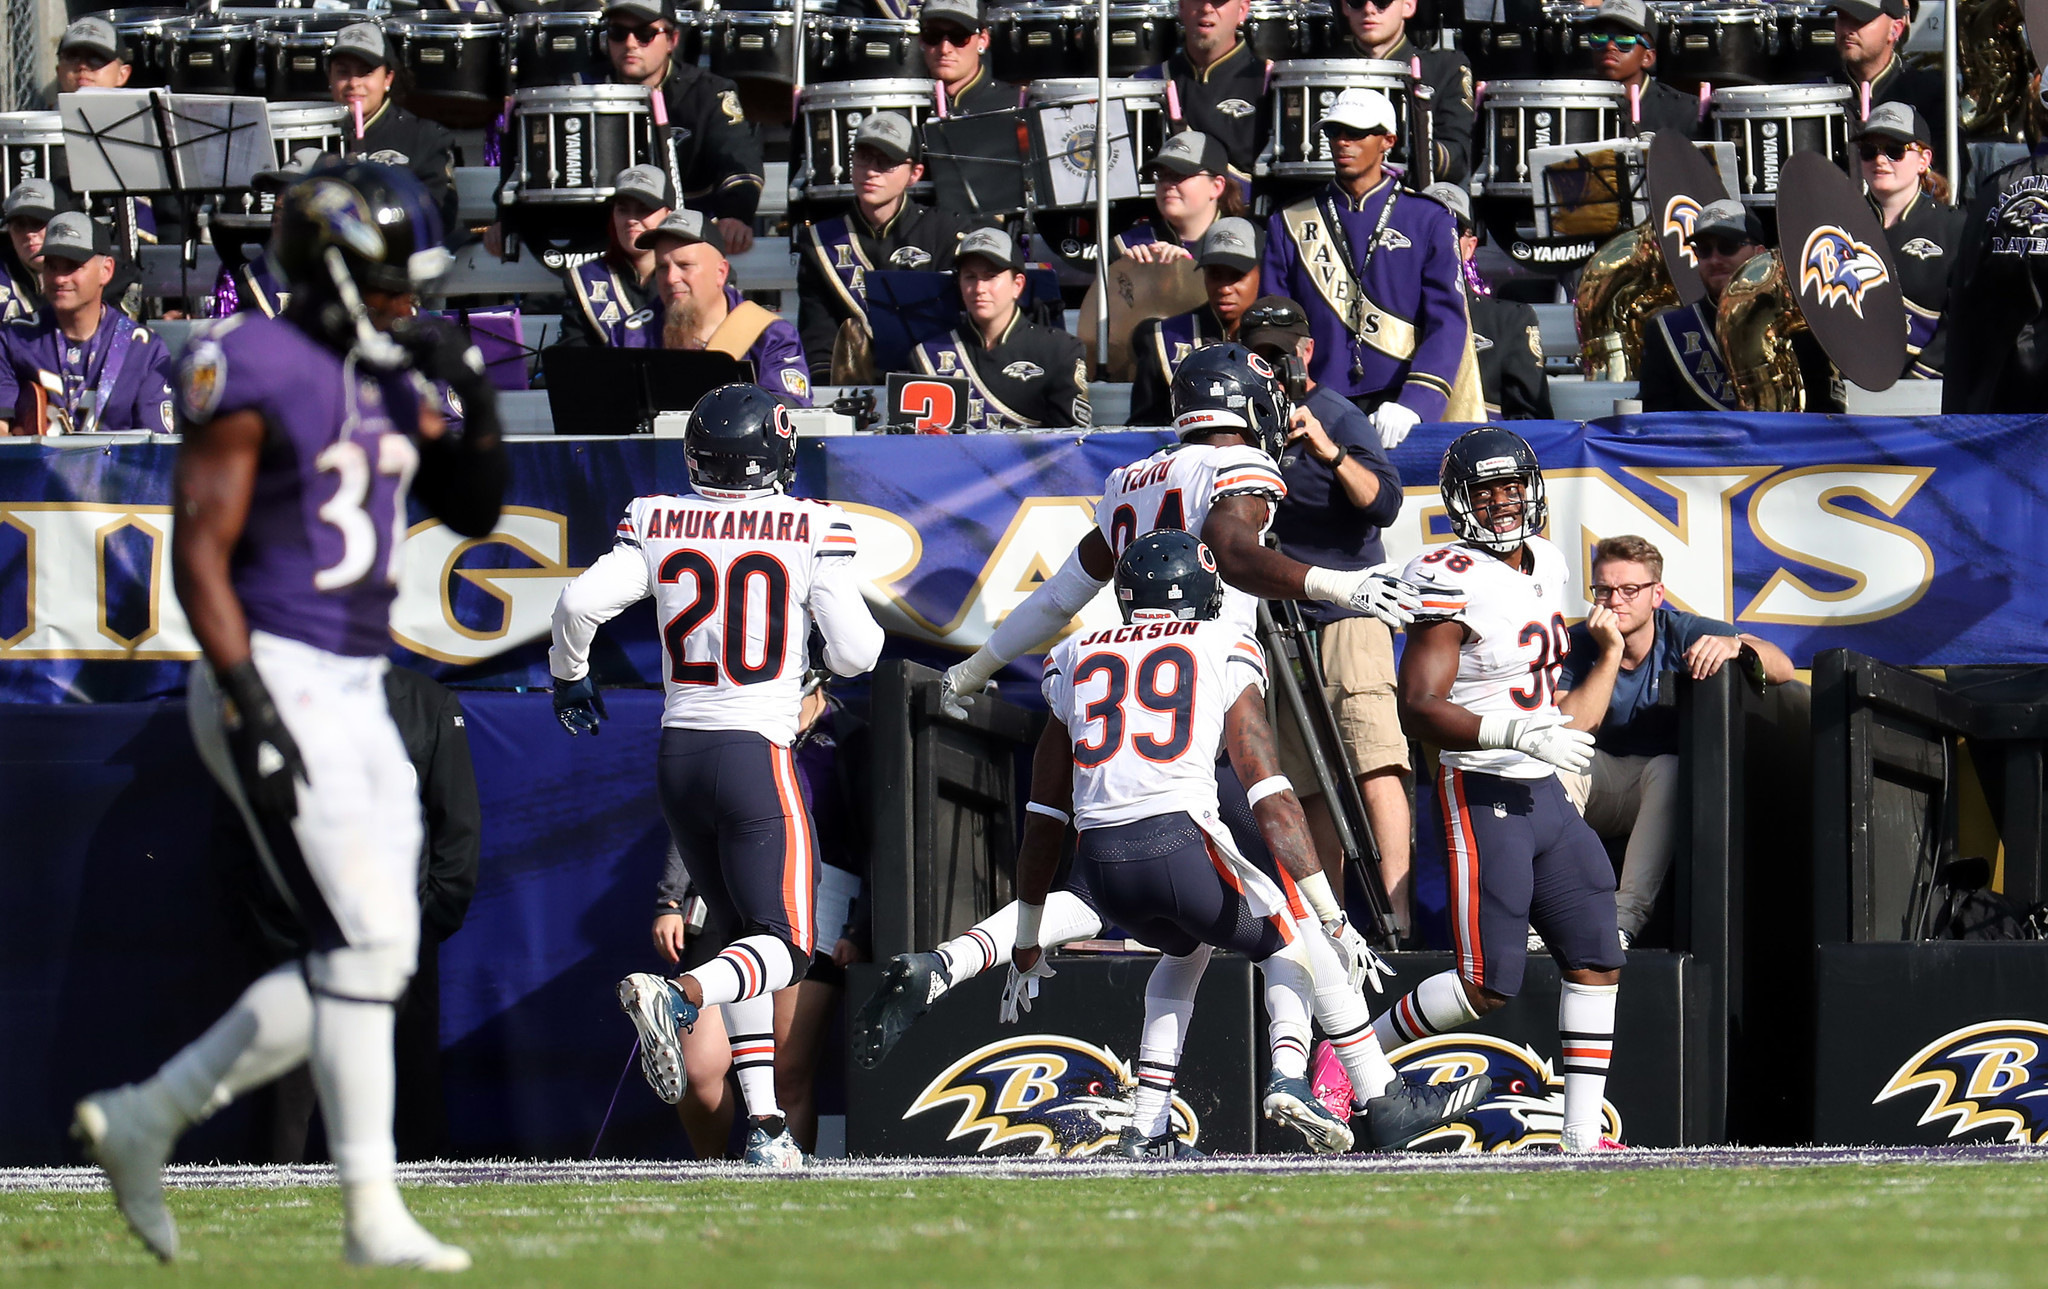 Ct-adrian-amos-homecoming-interception-notes-spt-1016-20171015